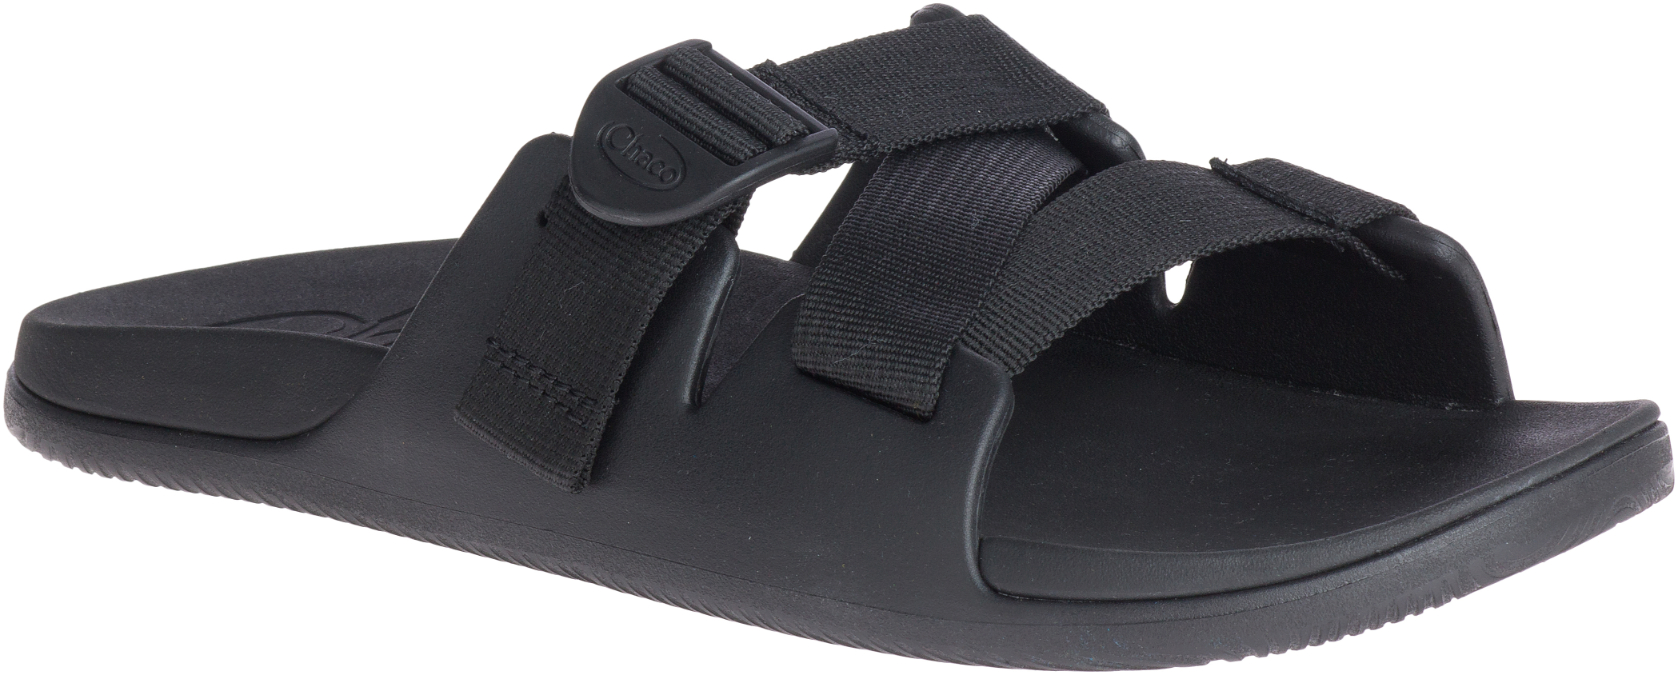 Chaco-Chillos Slide - Women's